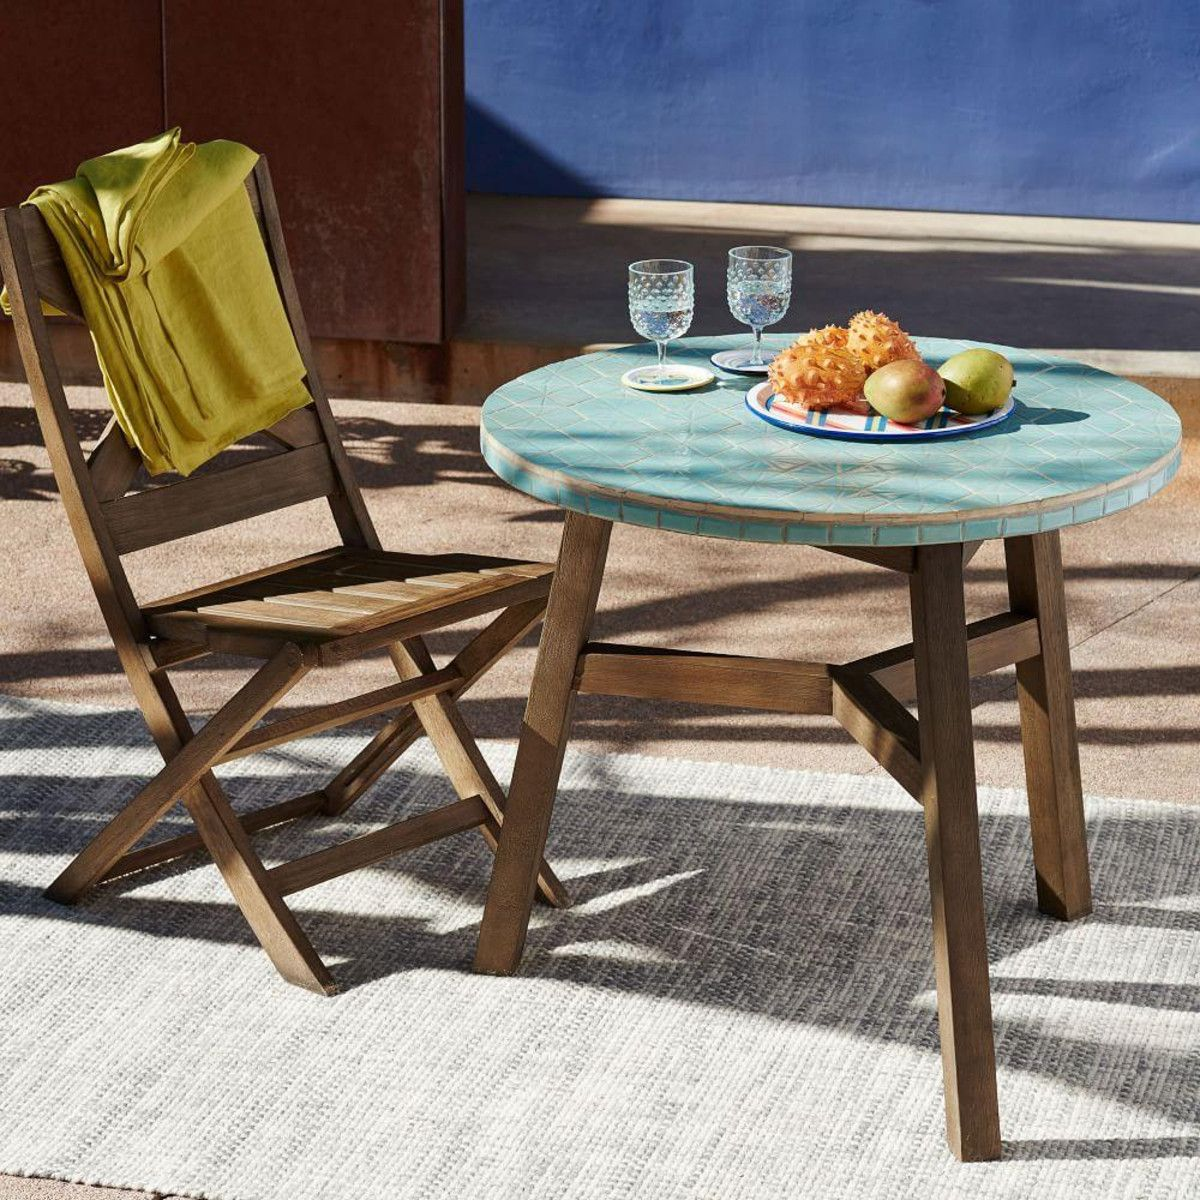 Add A Little Art To Your Outdoor Space With The Mosaic Tiled Awesome Mosaic Dining Room Table Design Inspiration